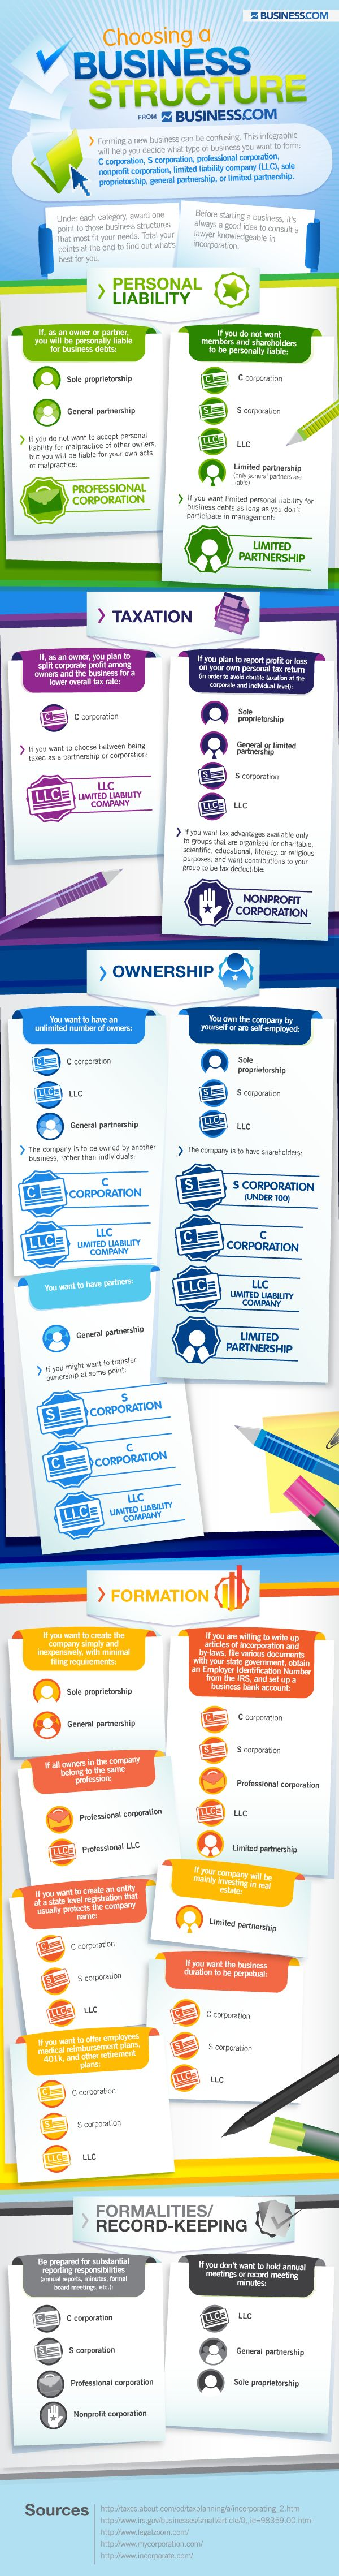 What Kind Of Business Structure Should You Choose? #infographic